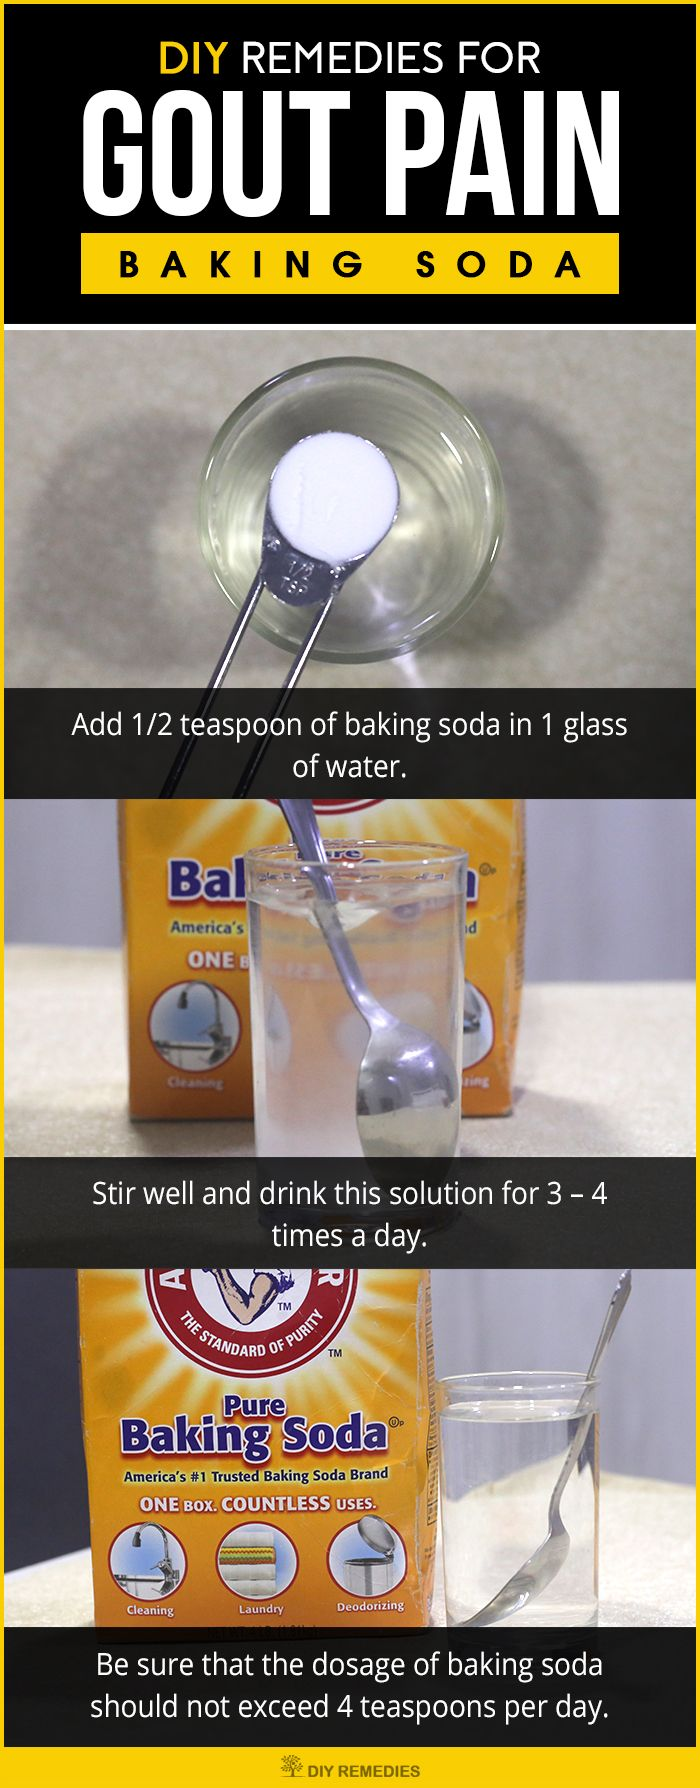 DIY Remedies for Gout Pain  Pain duepices Baking soda and Baking